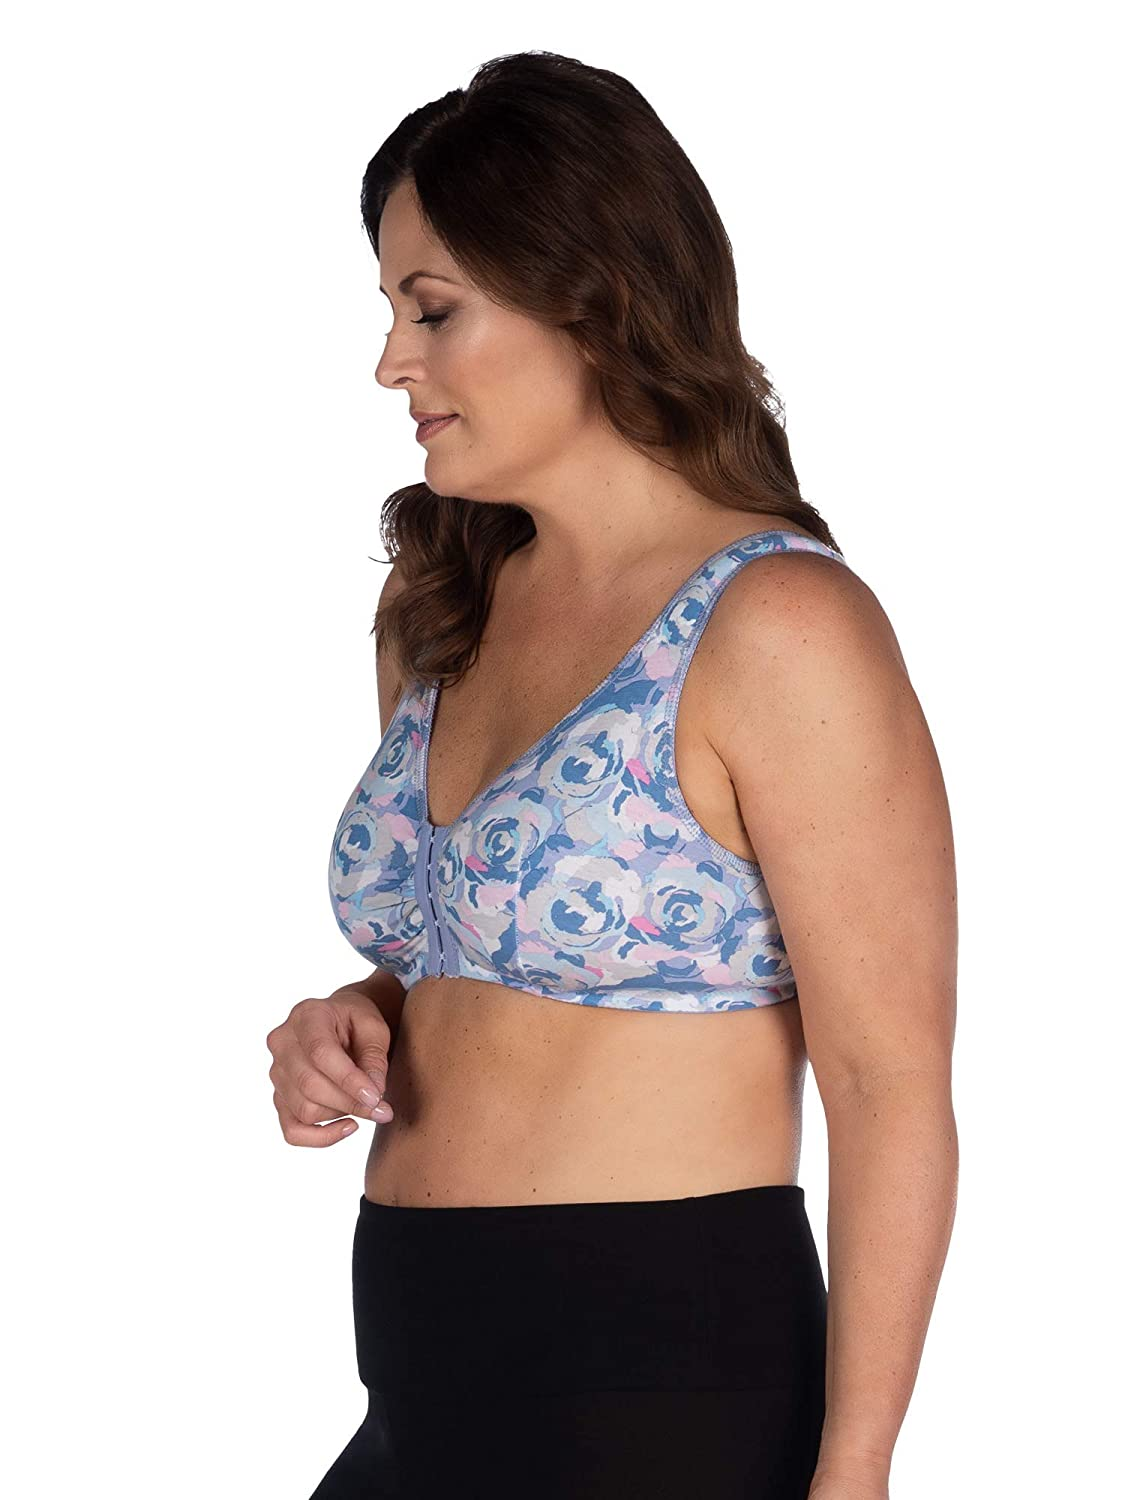 a1f50530502 Leading Lady Women's Plus Size Sleep Leisure Cotton Bra: Amazon.ca:  Clothing & Accessories